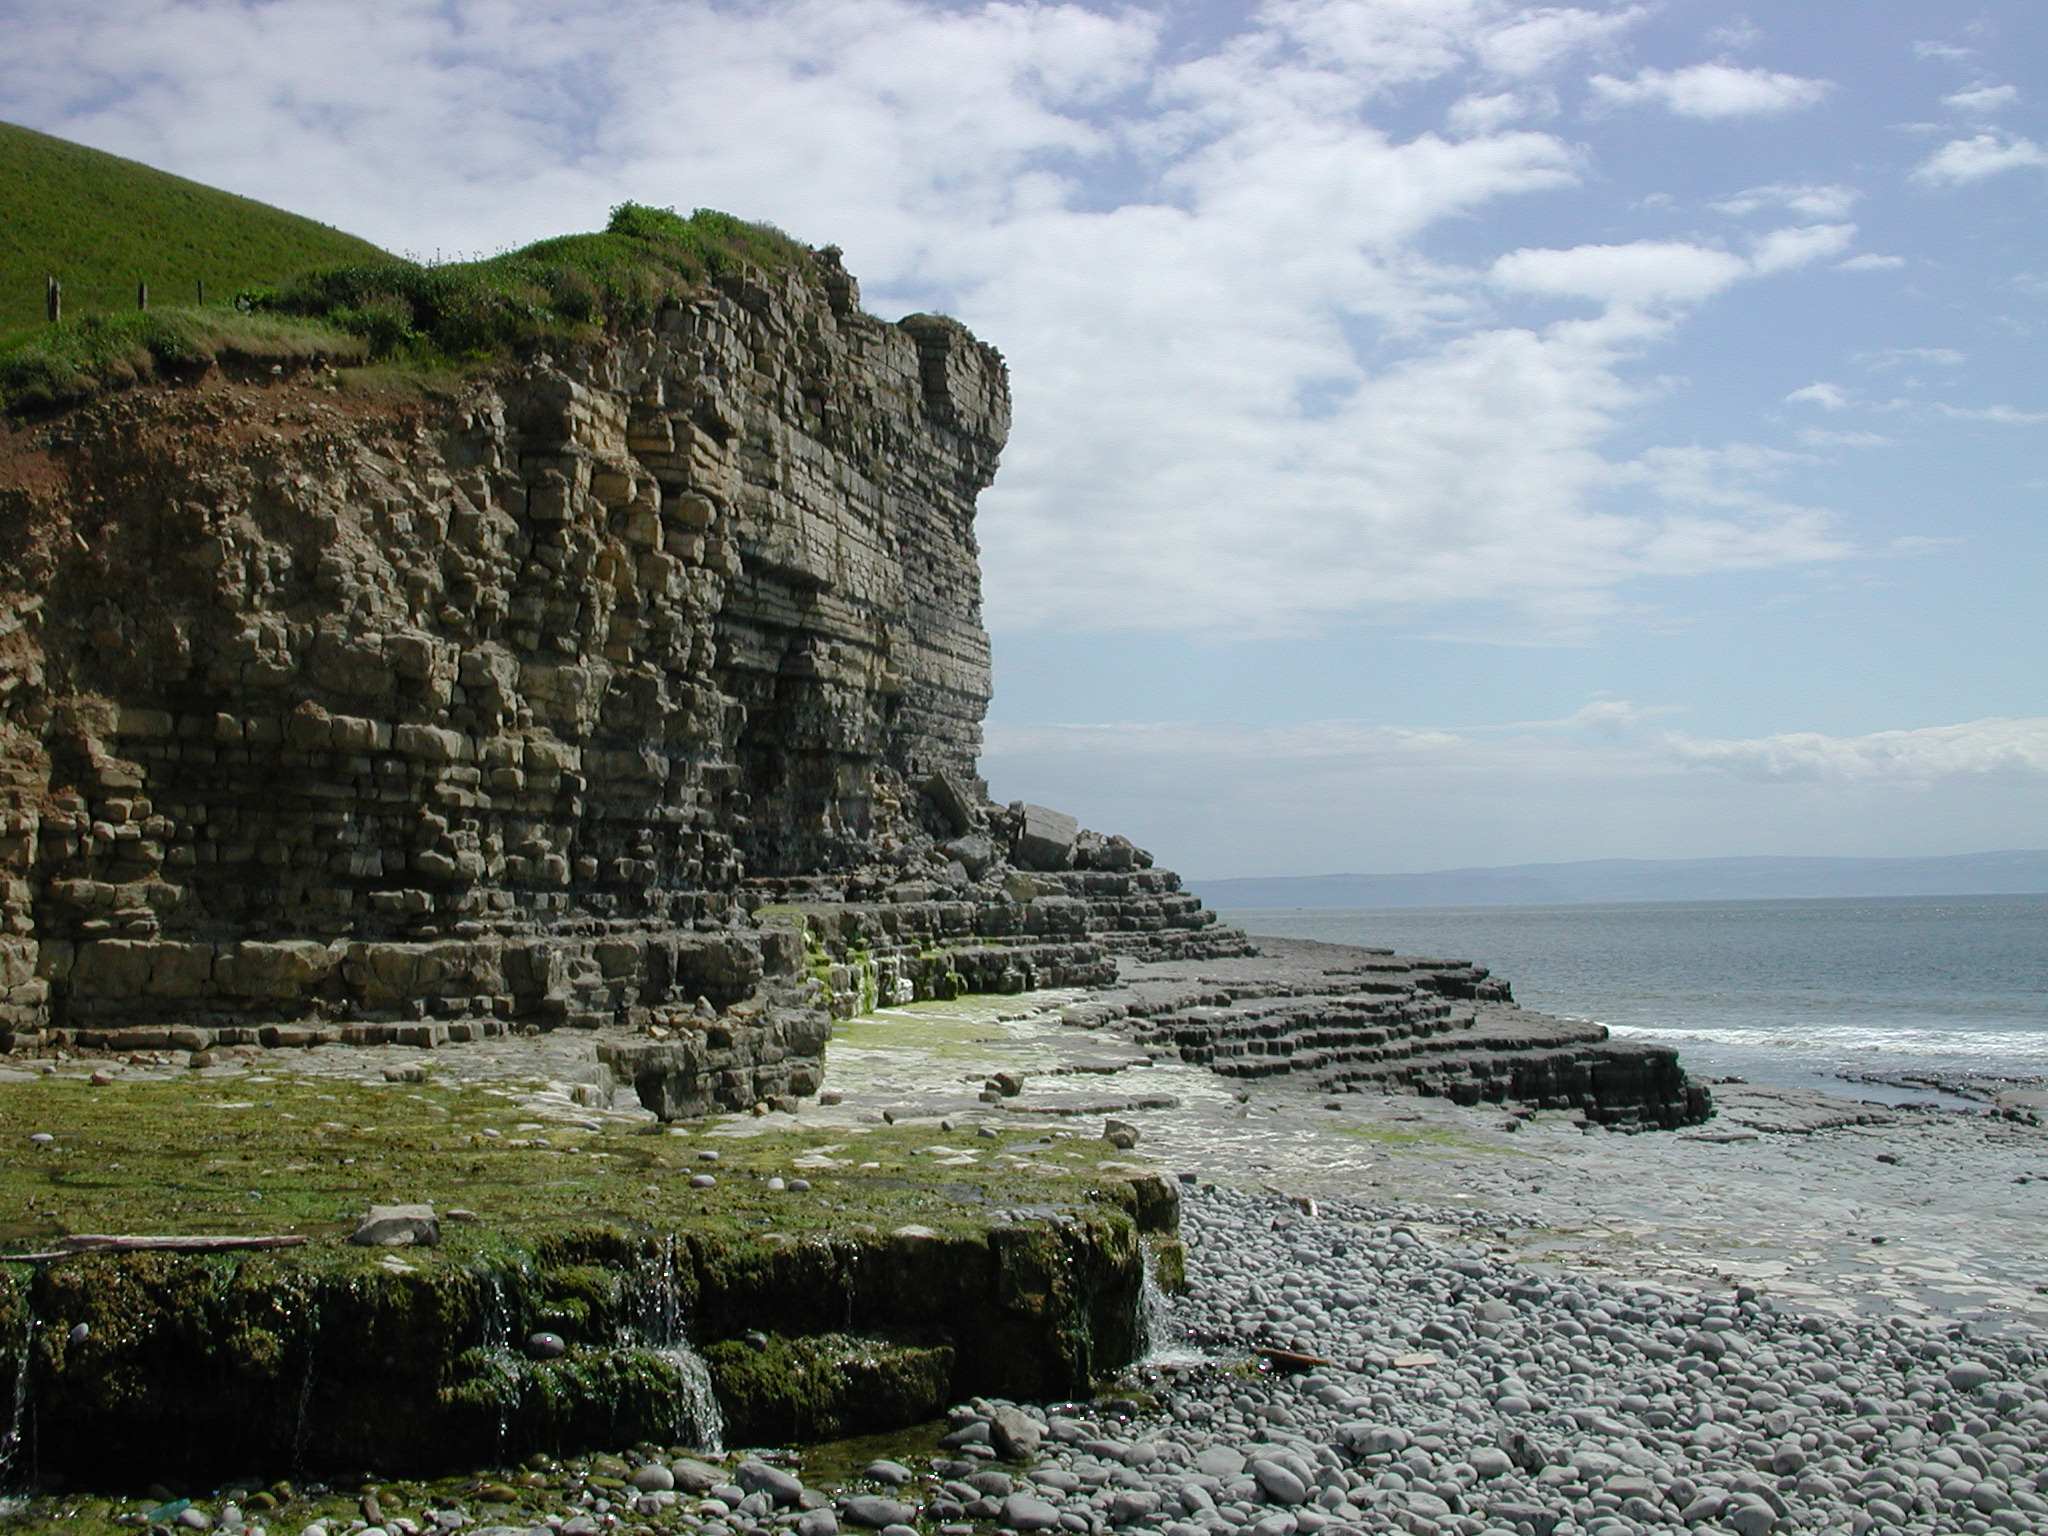 File:Cliff Face West Wales.jpg - Wikimedia Commons